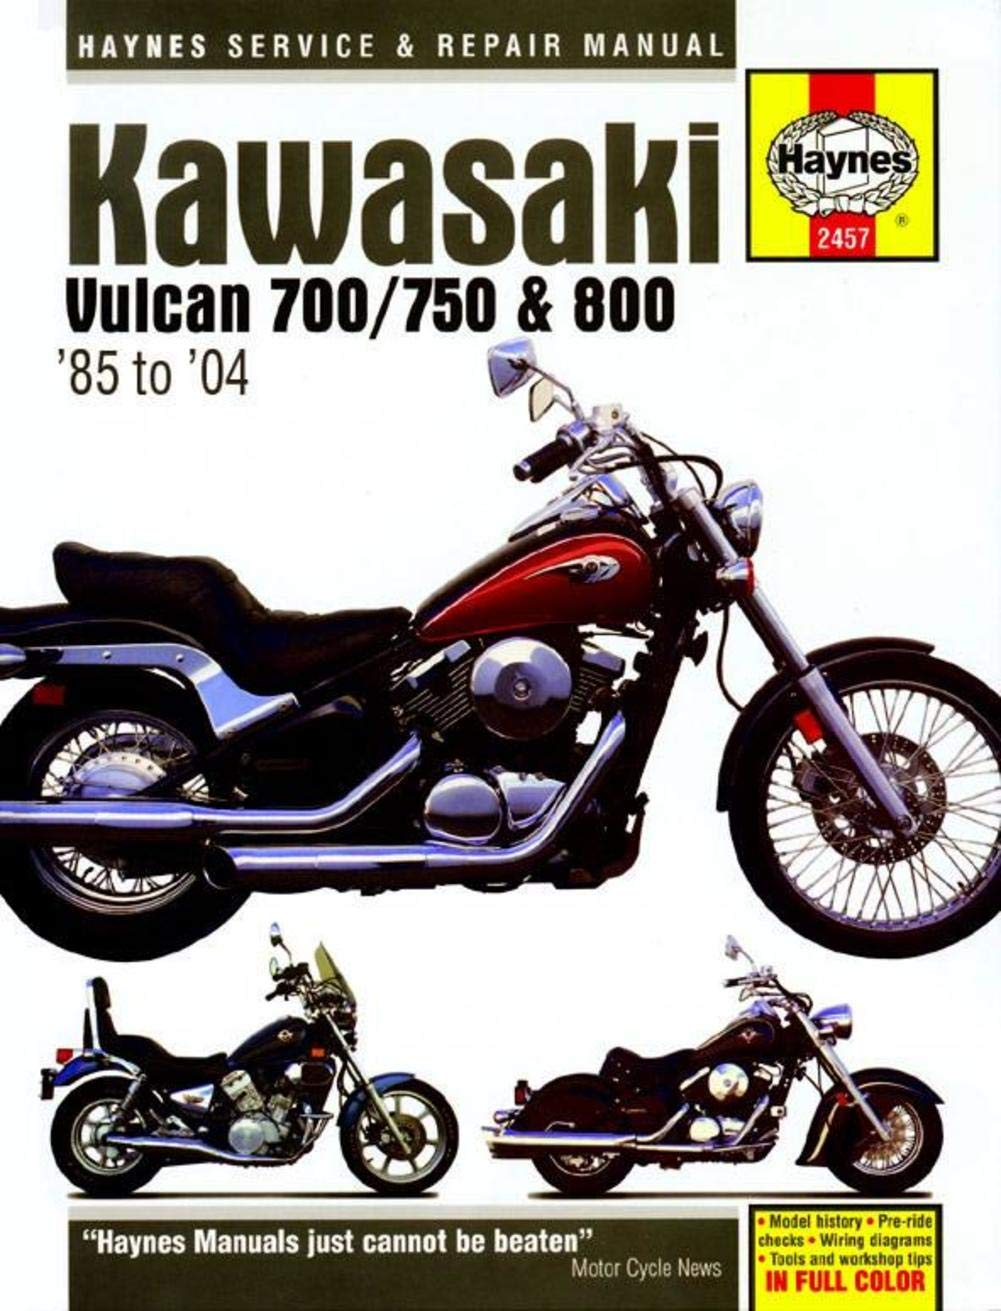 800 Kawasaki Motorcycle Wiring Diagrams Just Another Data Gpz1000rx Diagram Amazon Com Haynes Vulcan 700 750 Manual M2457 Automotive Cdi Ignition